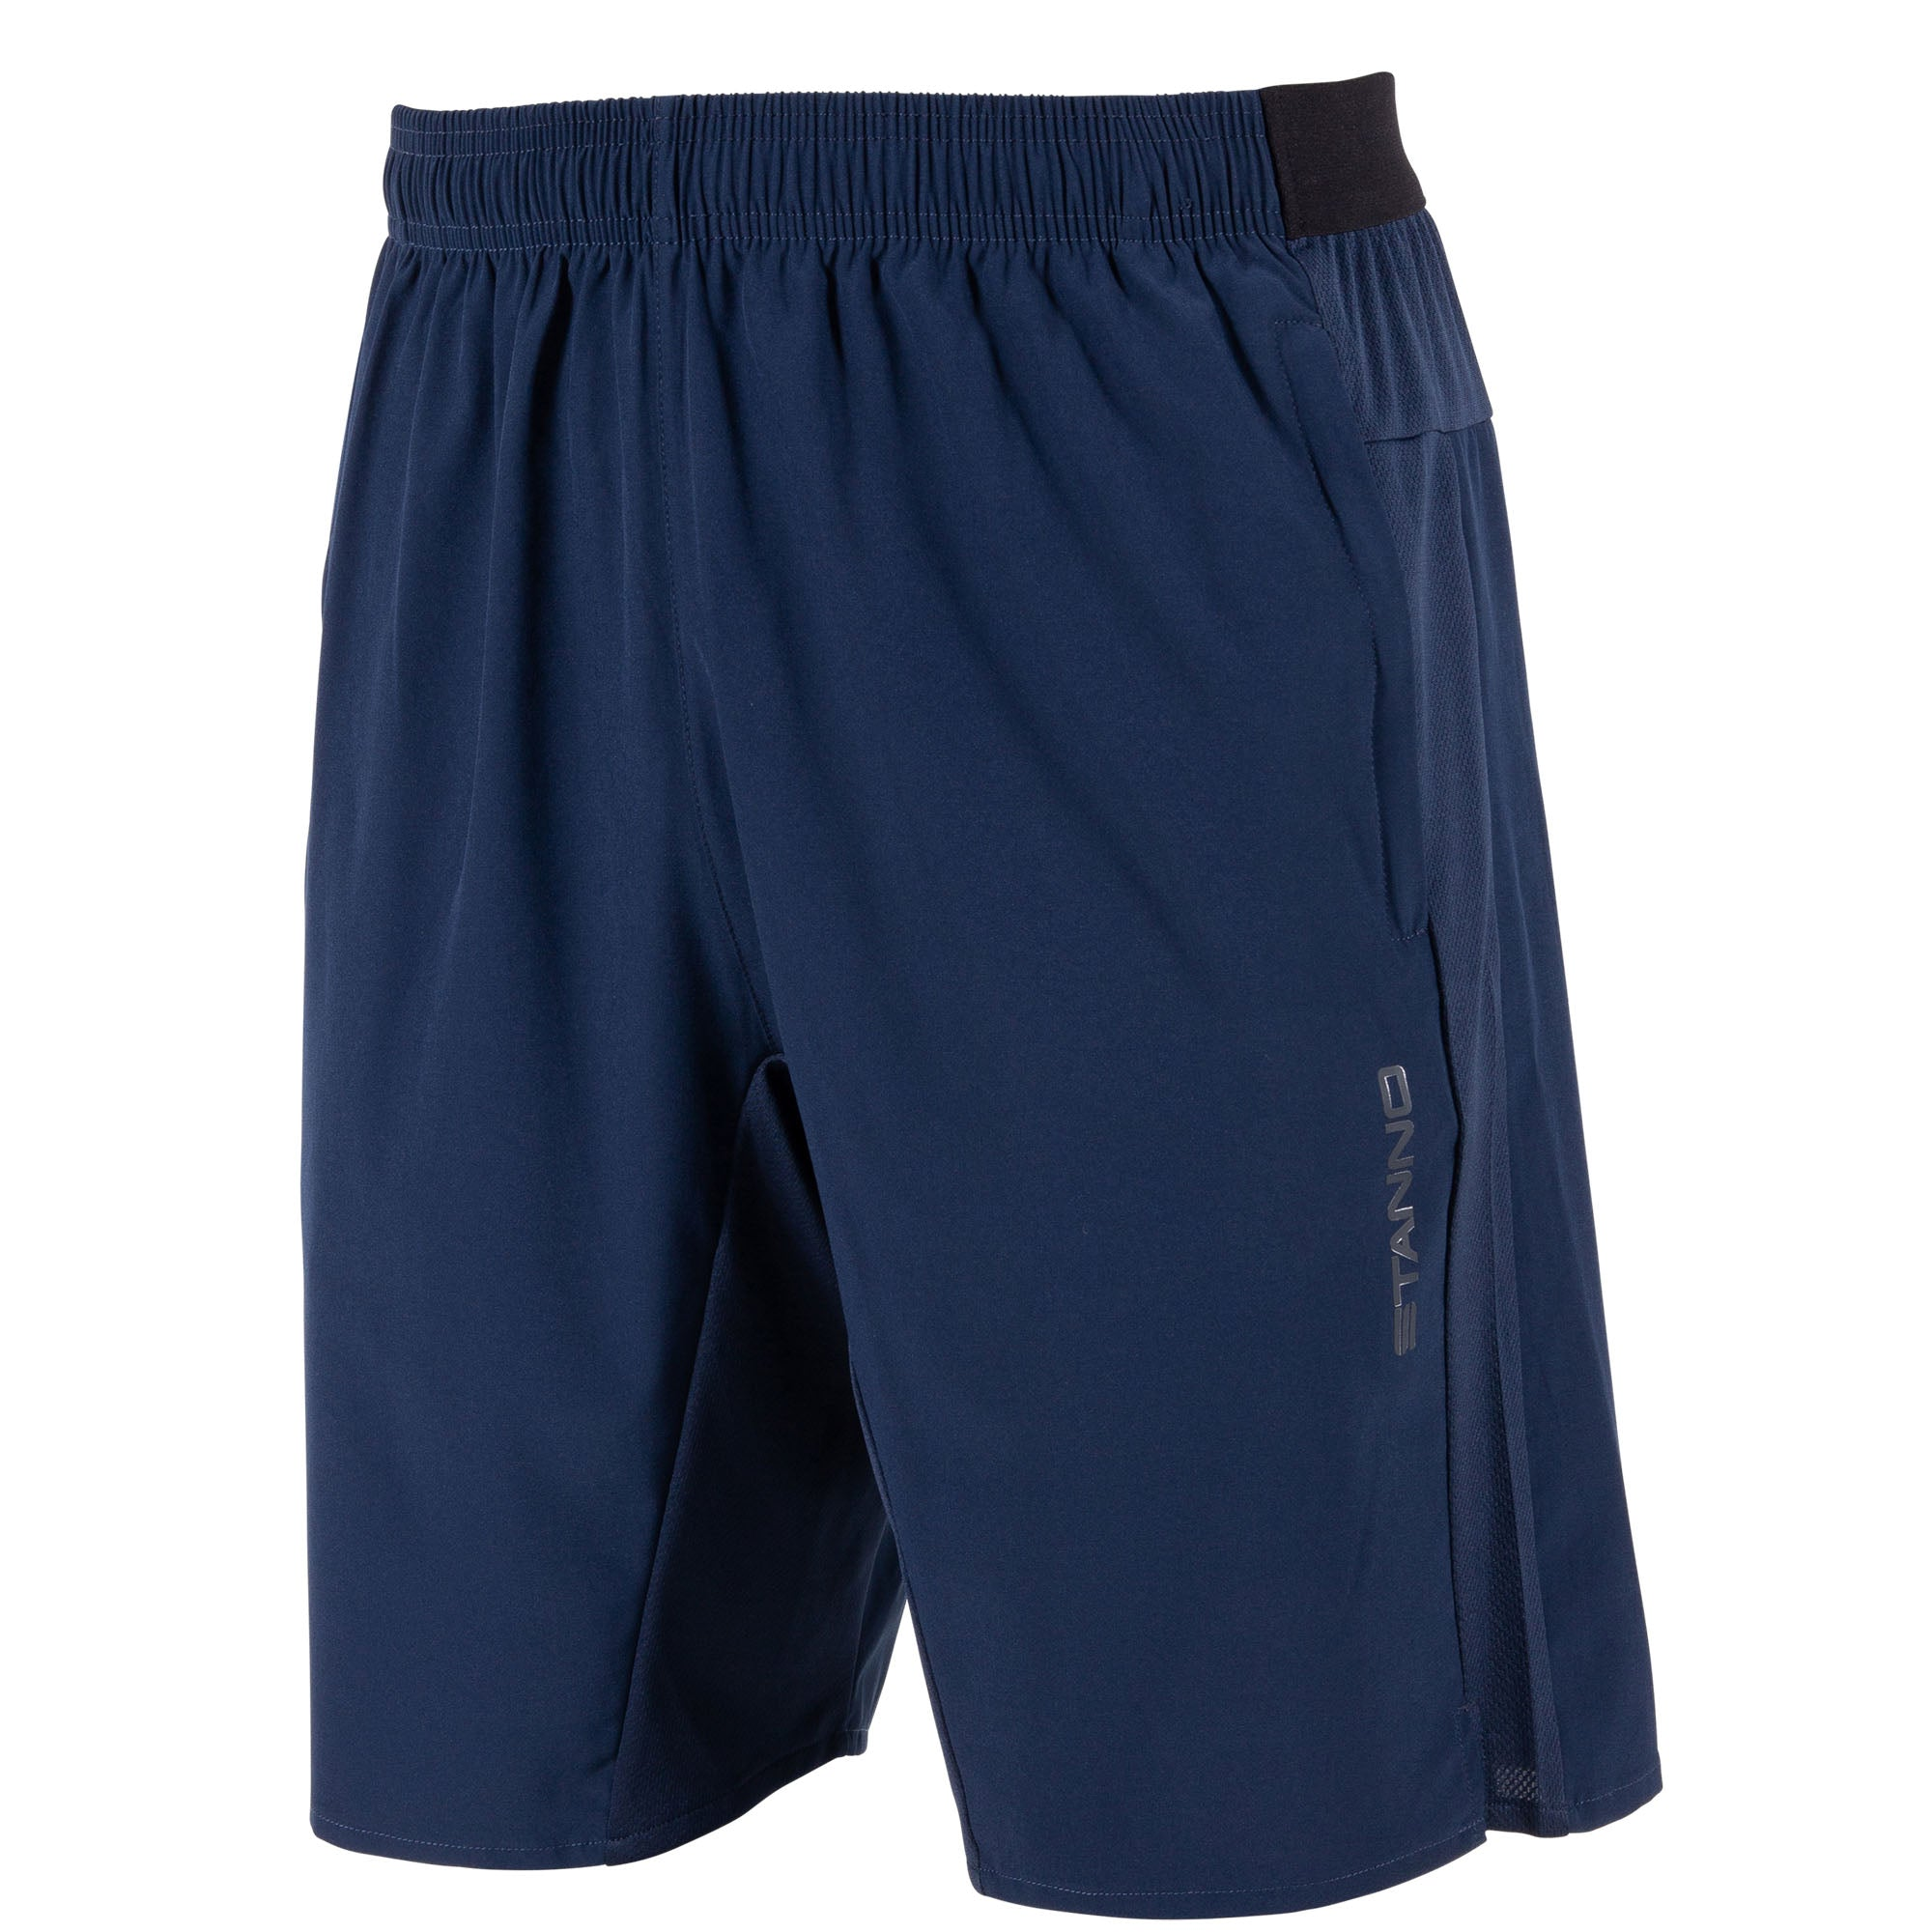 Front of navy Stanno Functionals Woven Short with side panels and subtle Stanno text logo down left leg